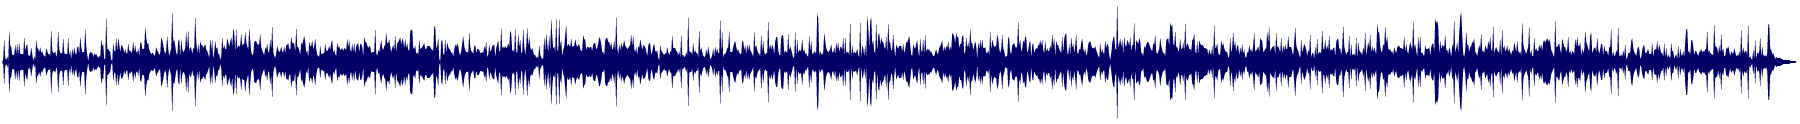 waveform of track #37557